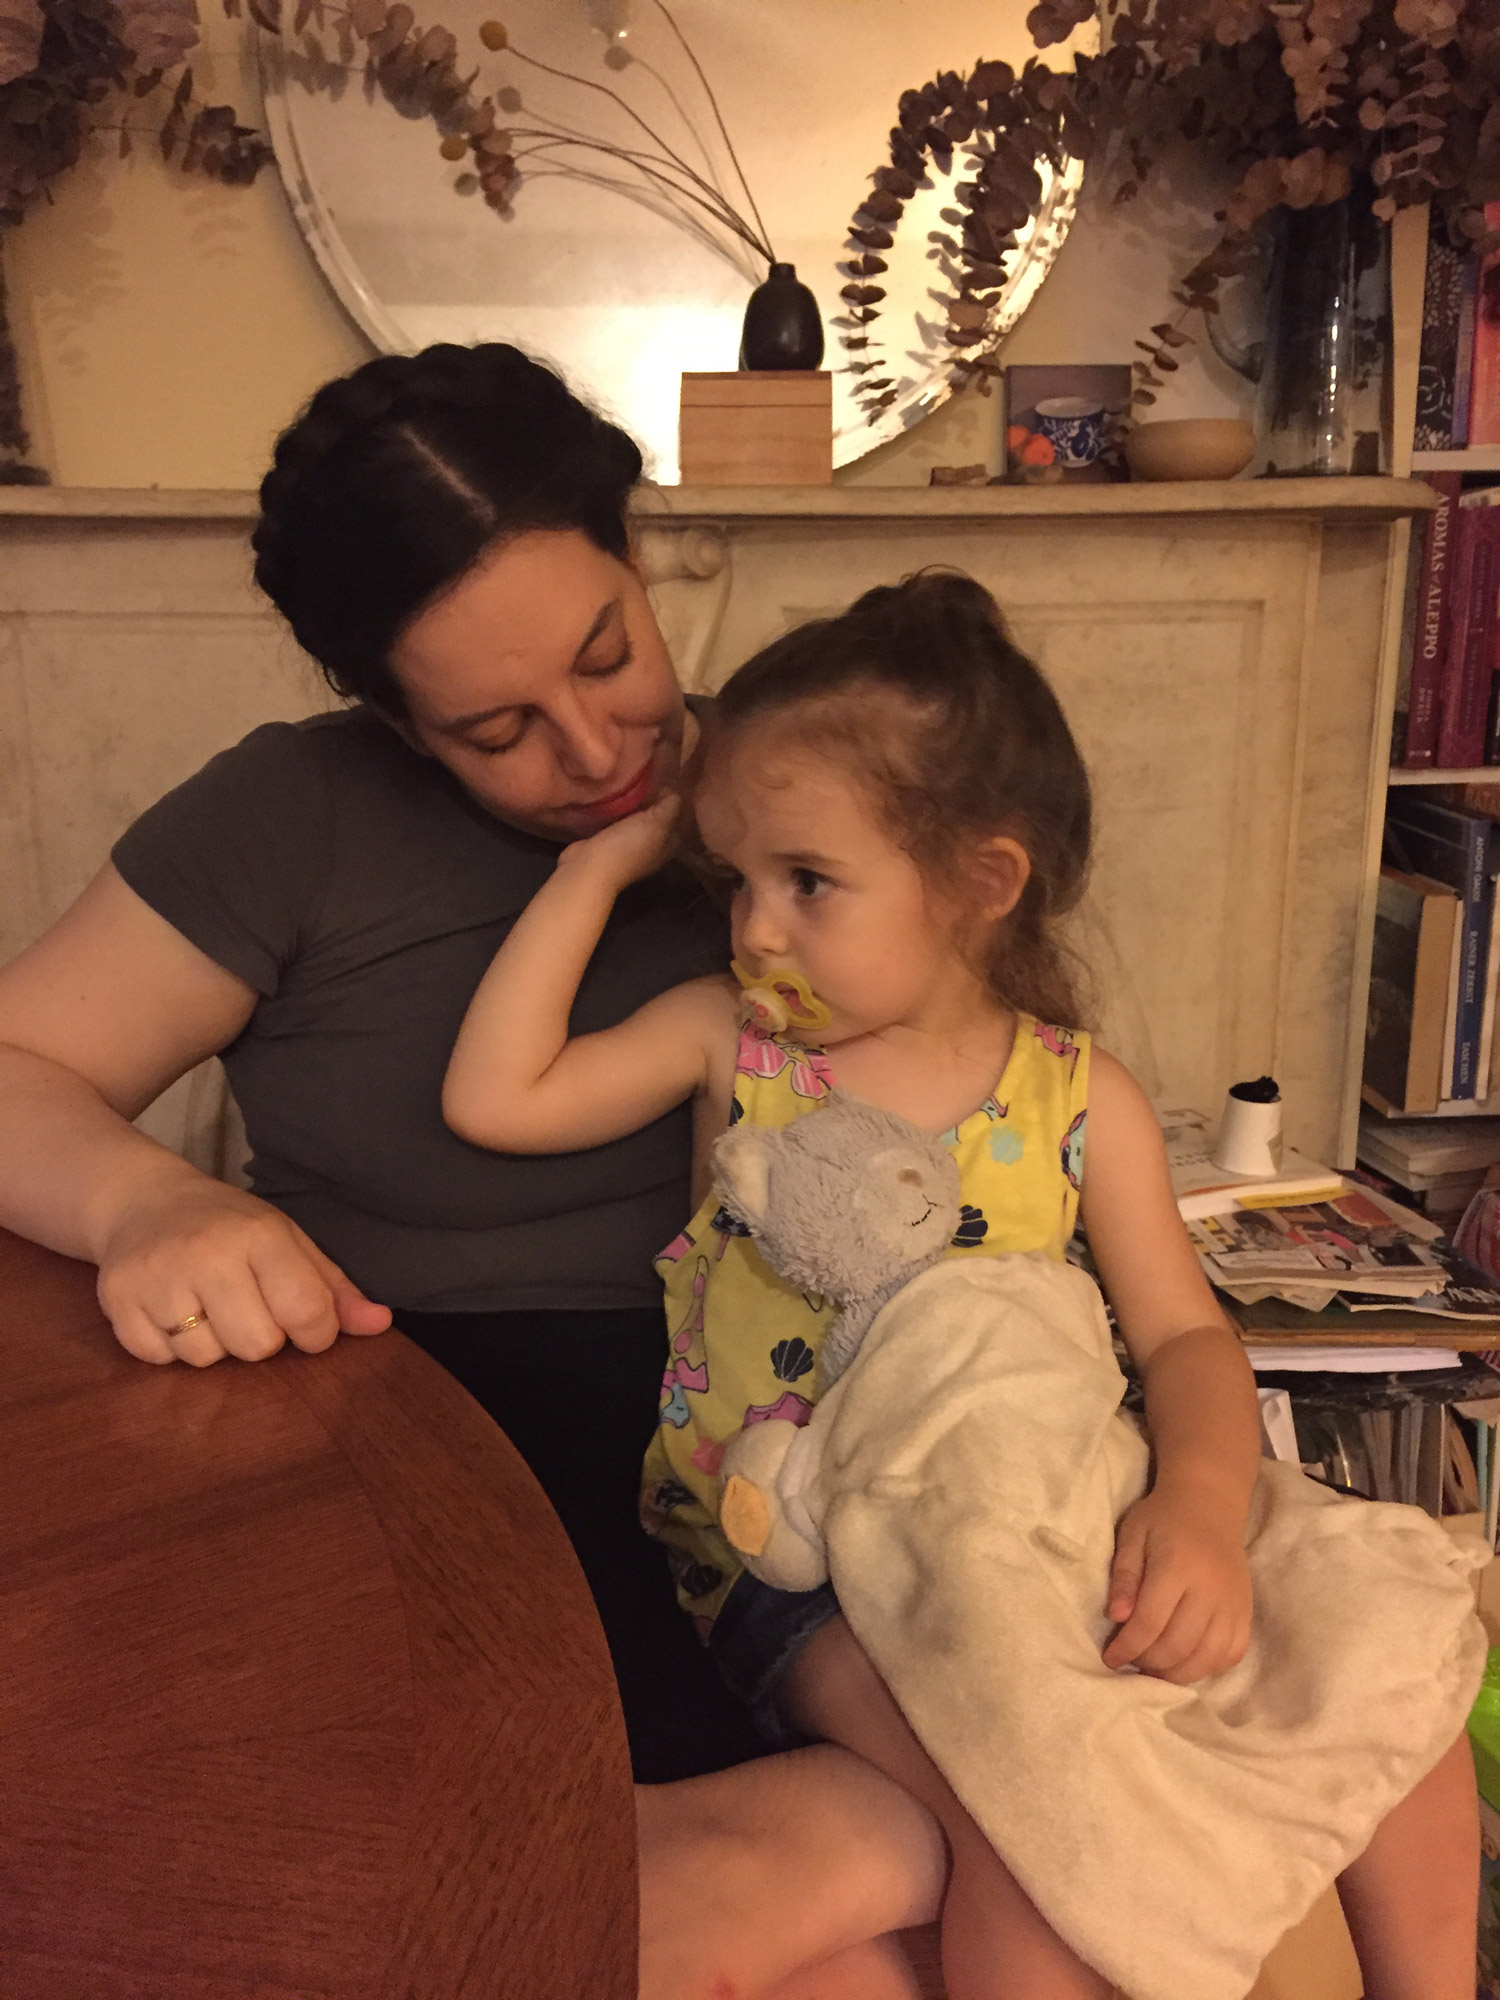 The author's sister holds her young child in a cozy living room